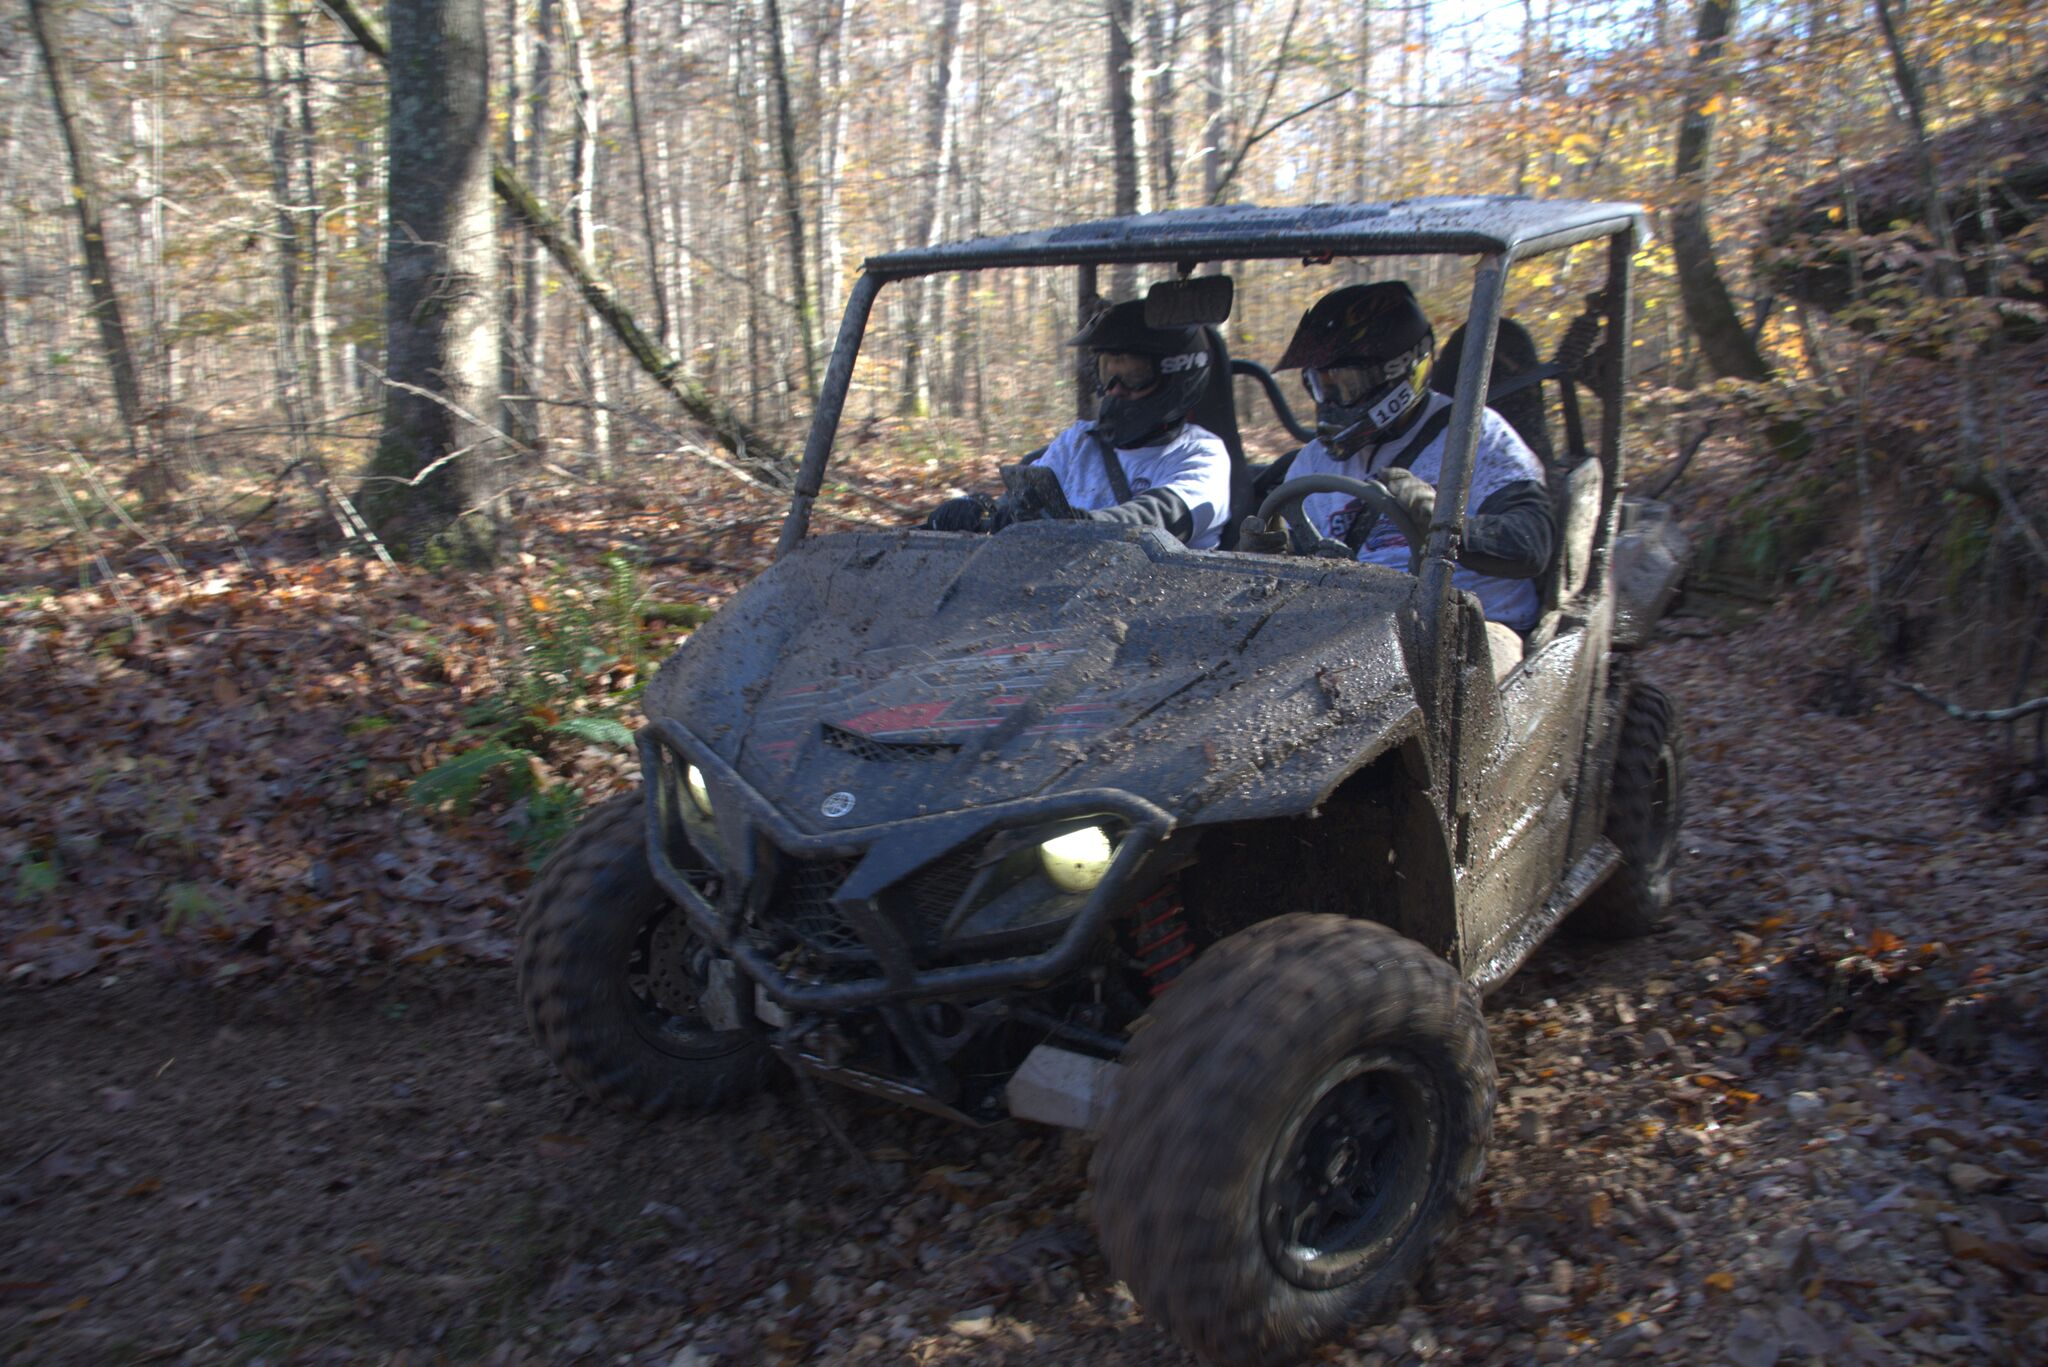 Yamaha XTReme Terrain Challenge - Wolverine, YXZ and Grizzly Classes